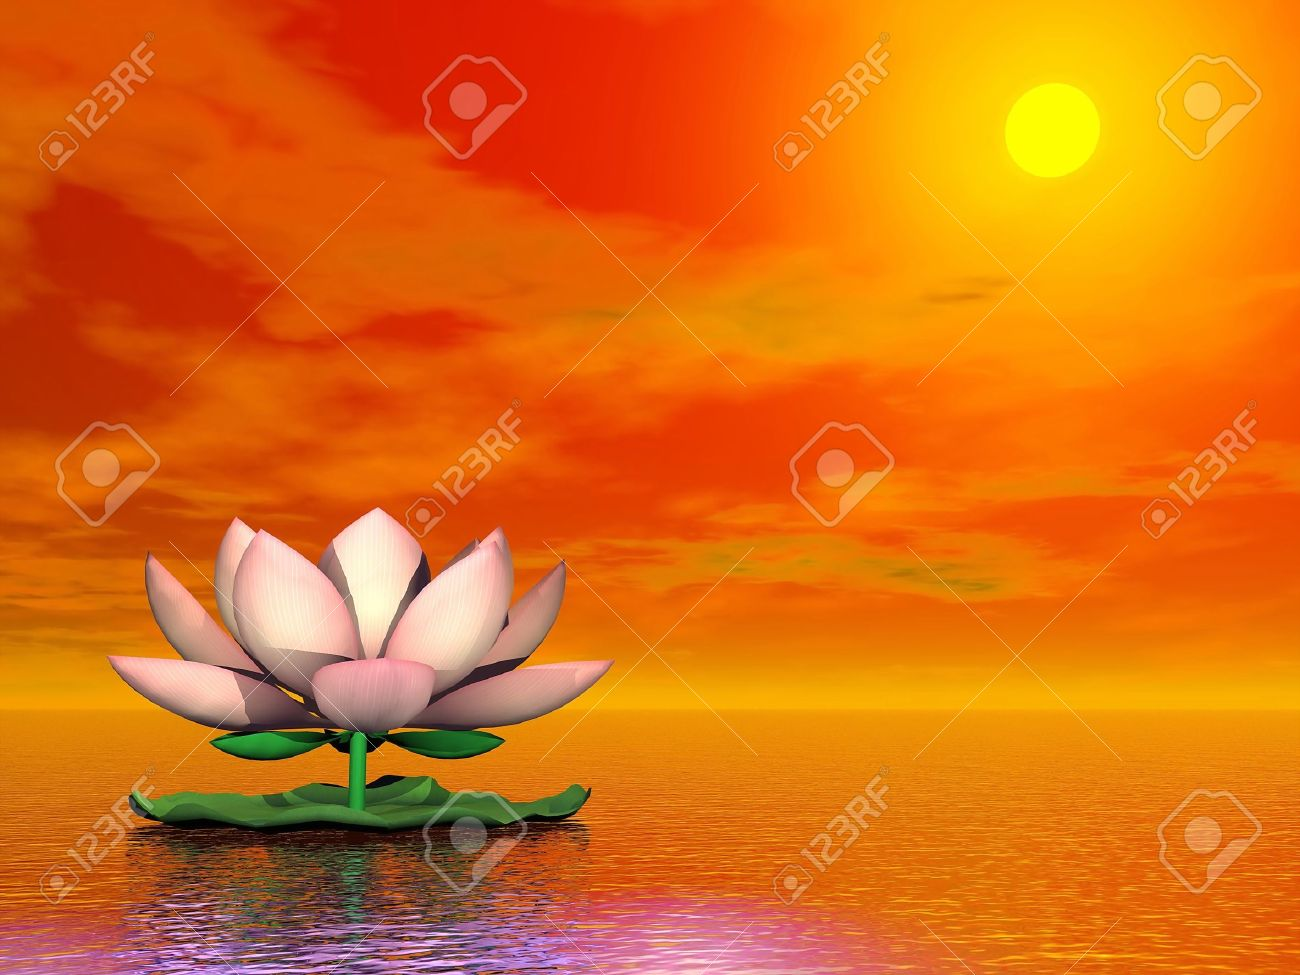 Beautiful pink lotus flower on the water by red sunset stock photo beautiful pink lotus flower on the water by red sunset stock photo 19756202 izmirmasajfo